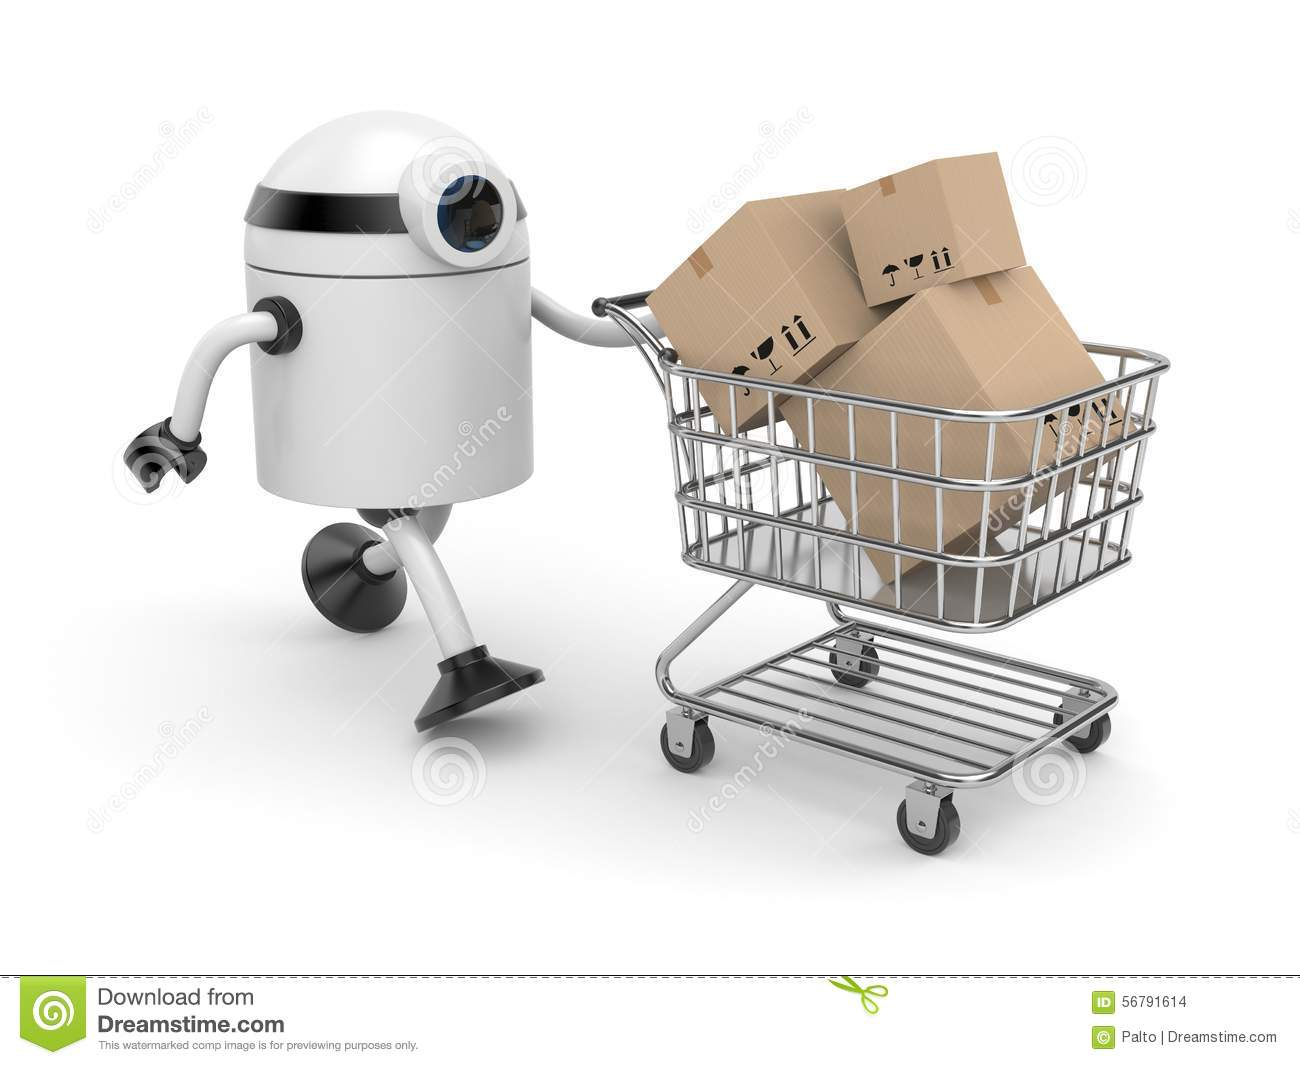 Robot with shopping cart stock illustration  Illustration of